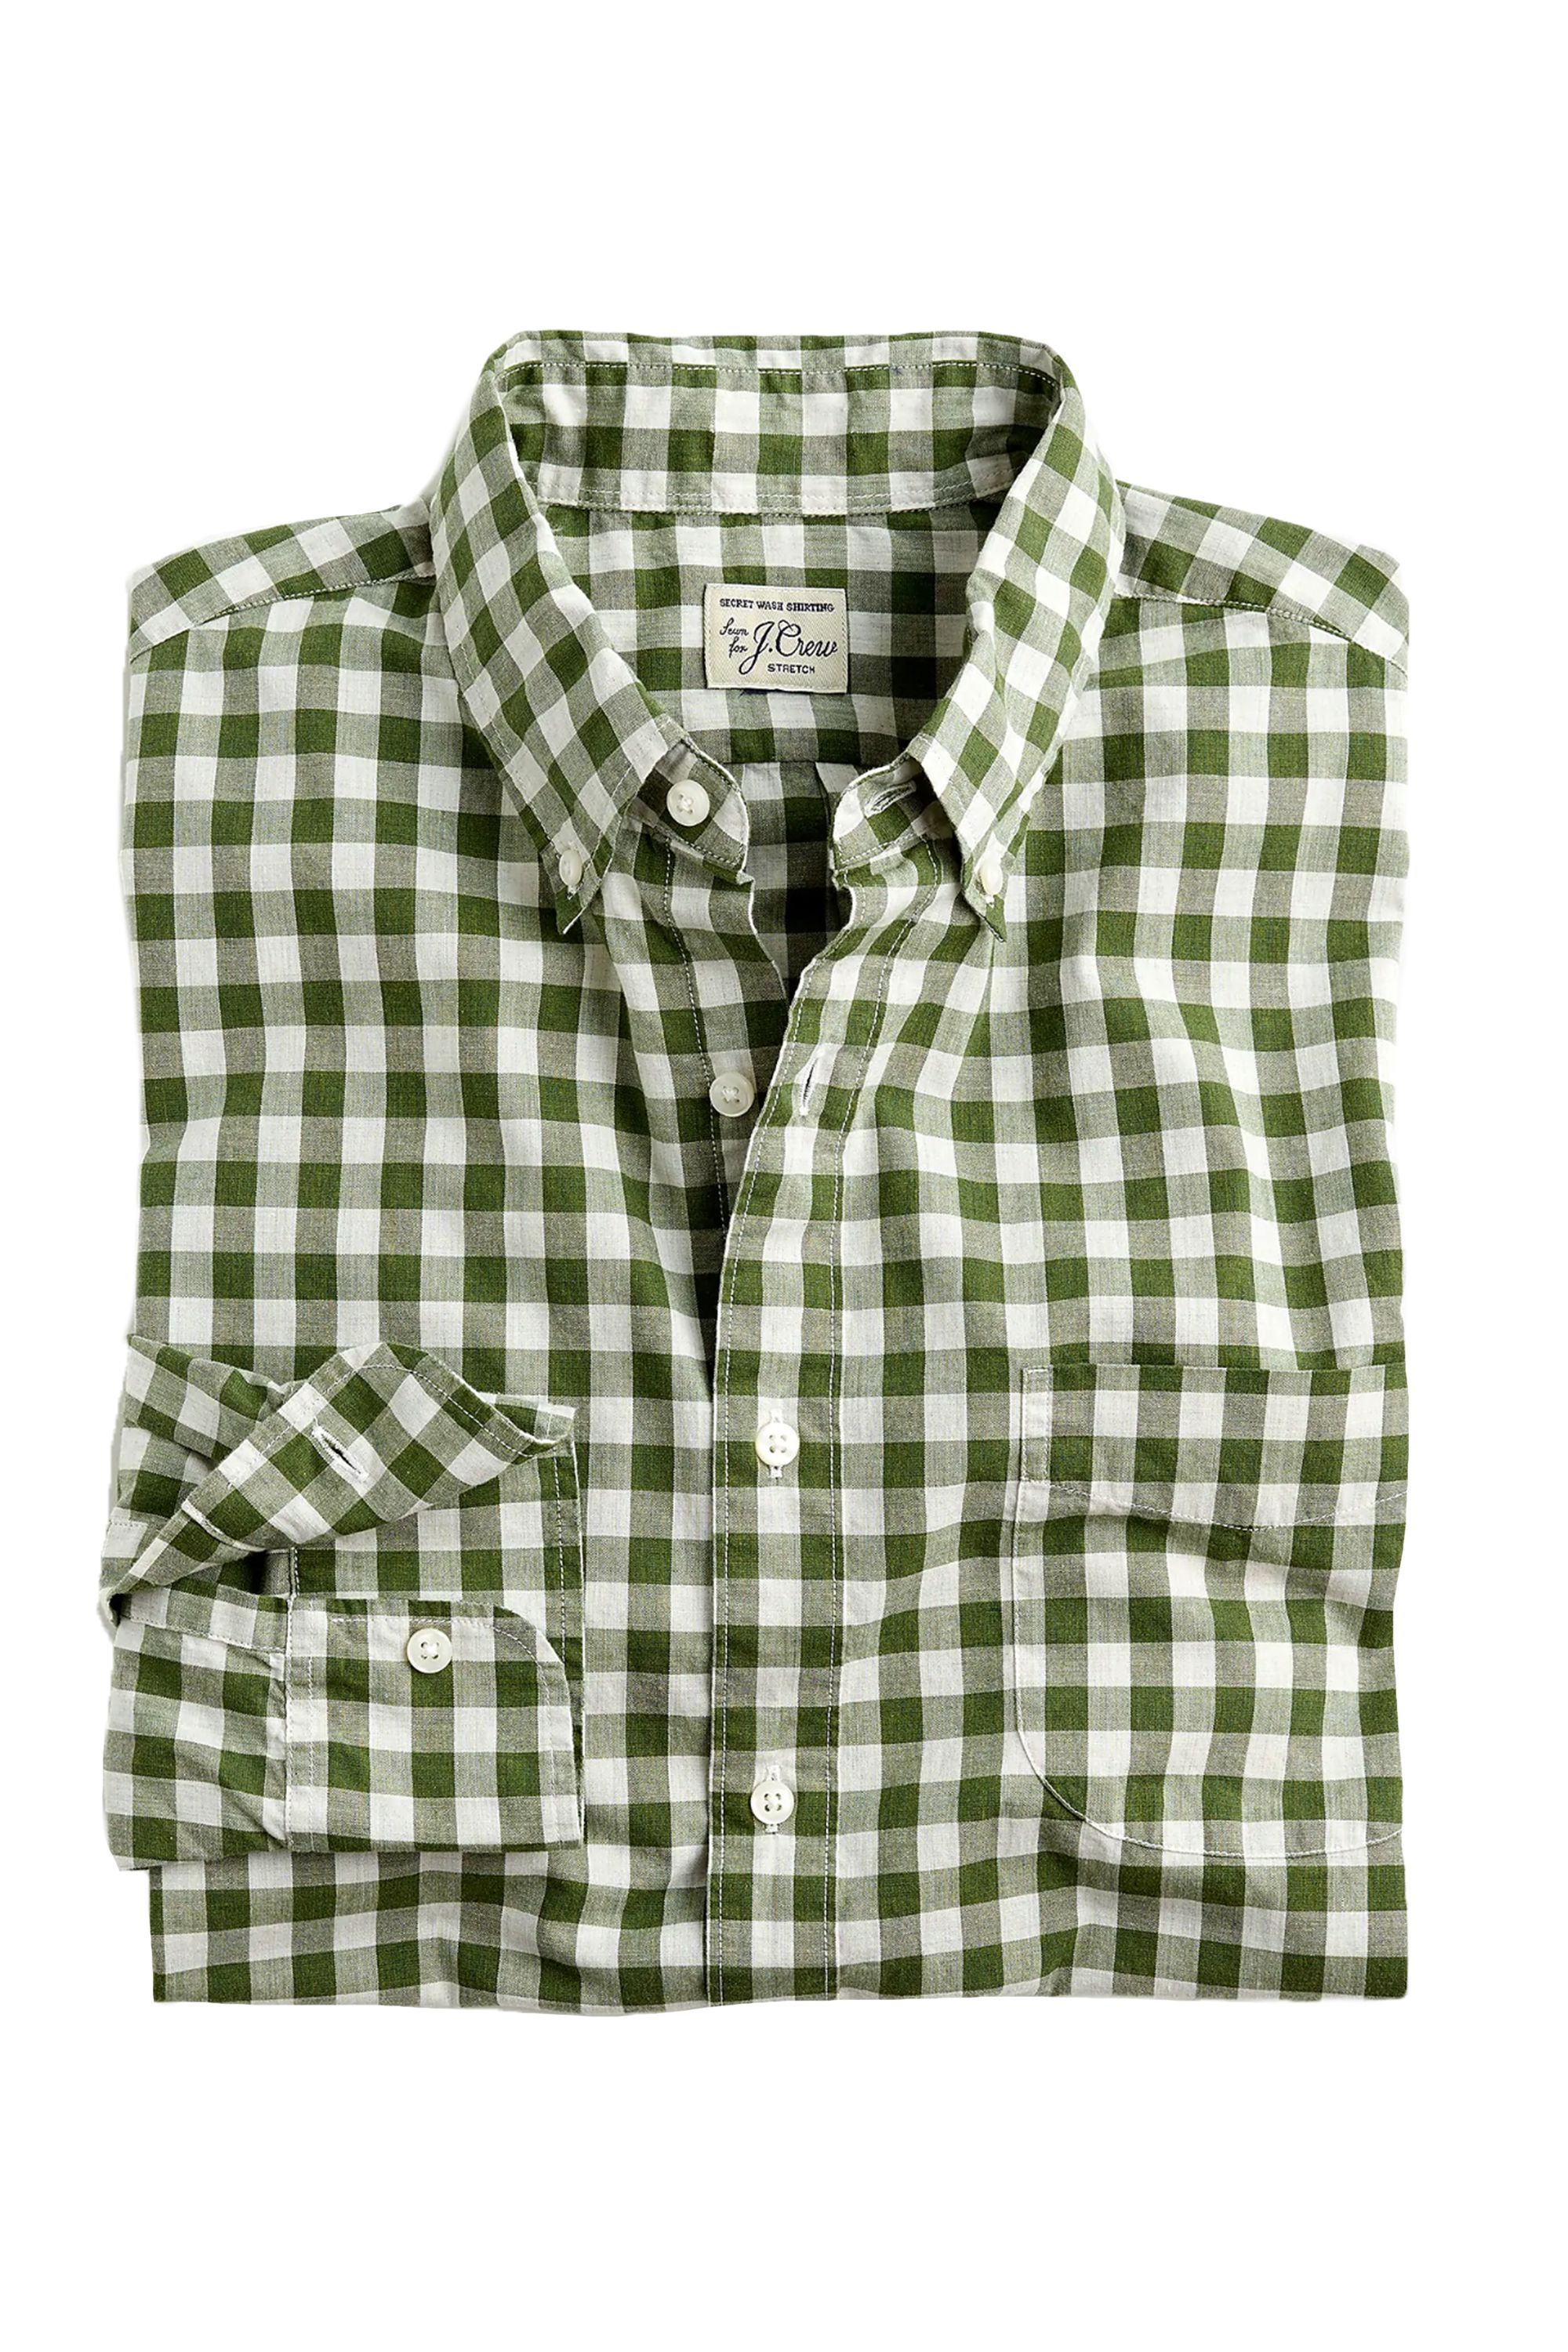 Slim-Stretch Secret Wash shirt J.Crew jcrew.com $45.99 SHOP NOW Your dad might be wary of green gingham, but you know he'll look great in this.